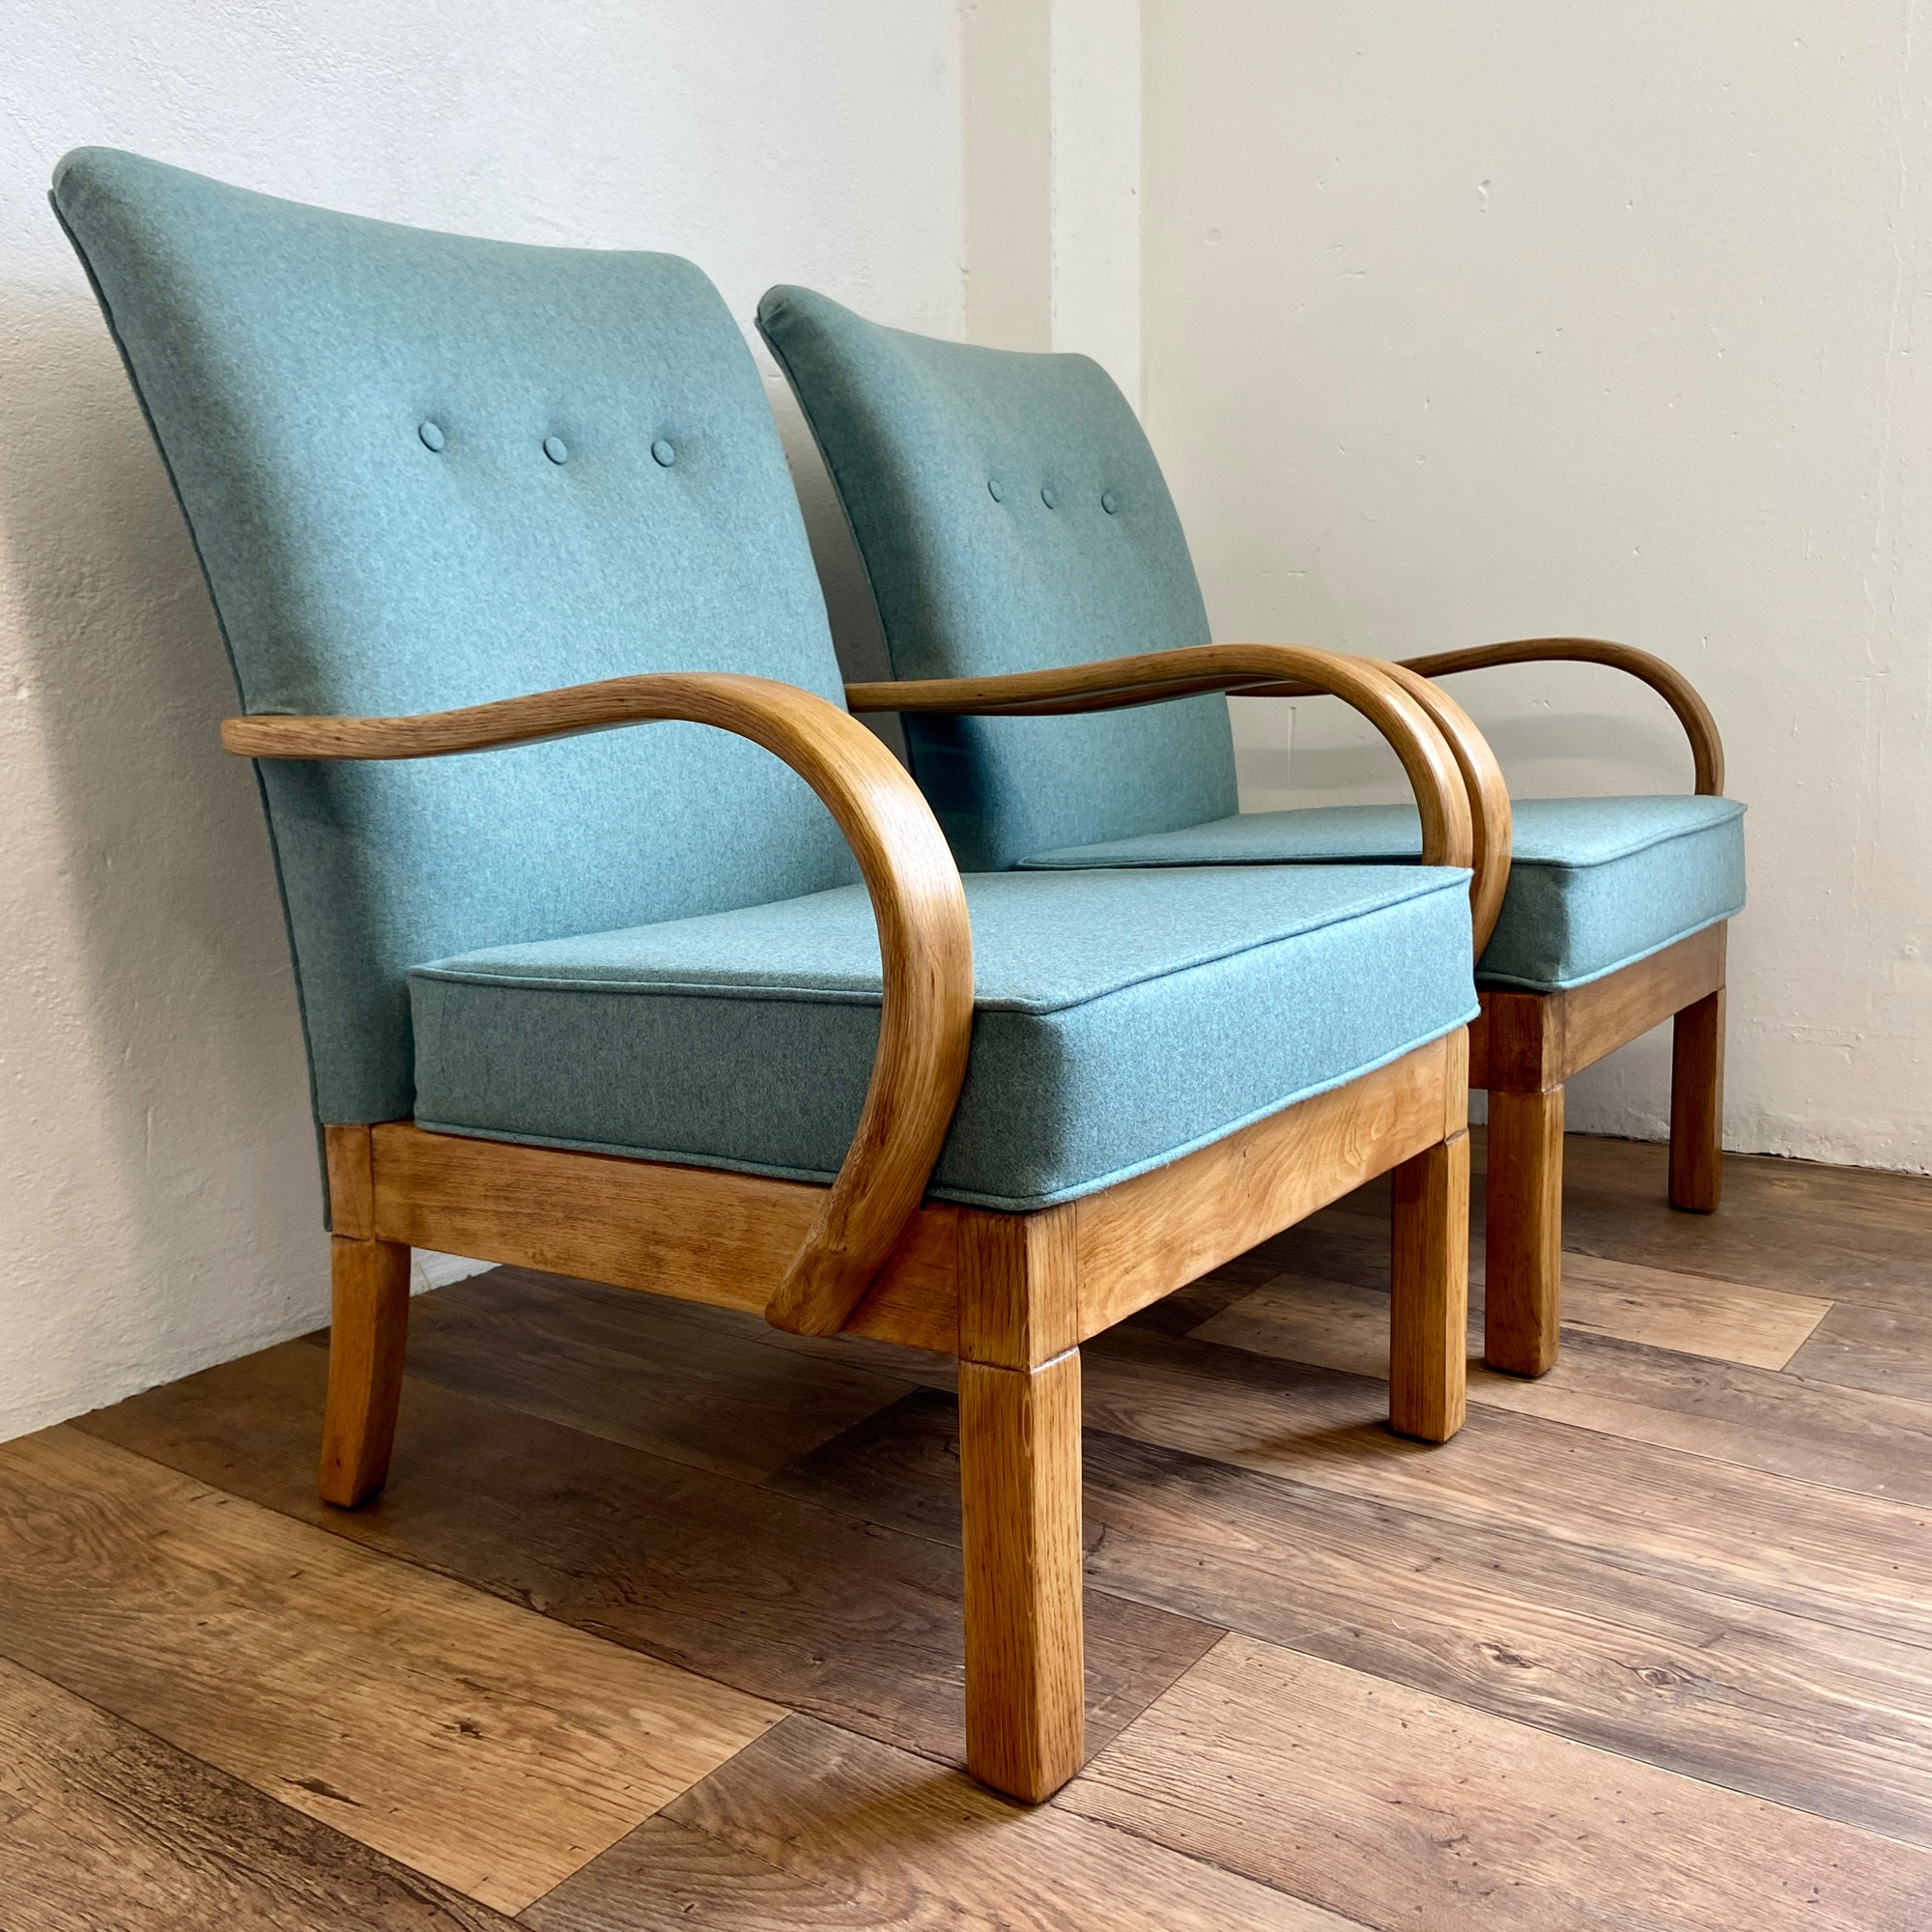 Utility bentwood arm chairs in Linwood's Lana fabric by Spring Upholstery Brighton